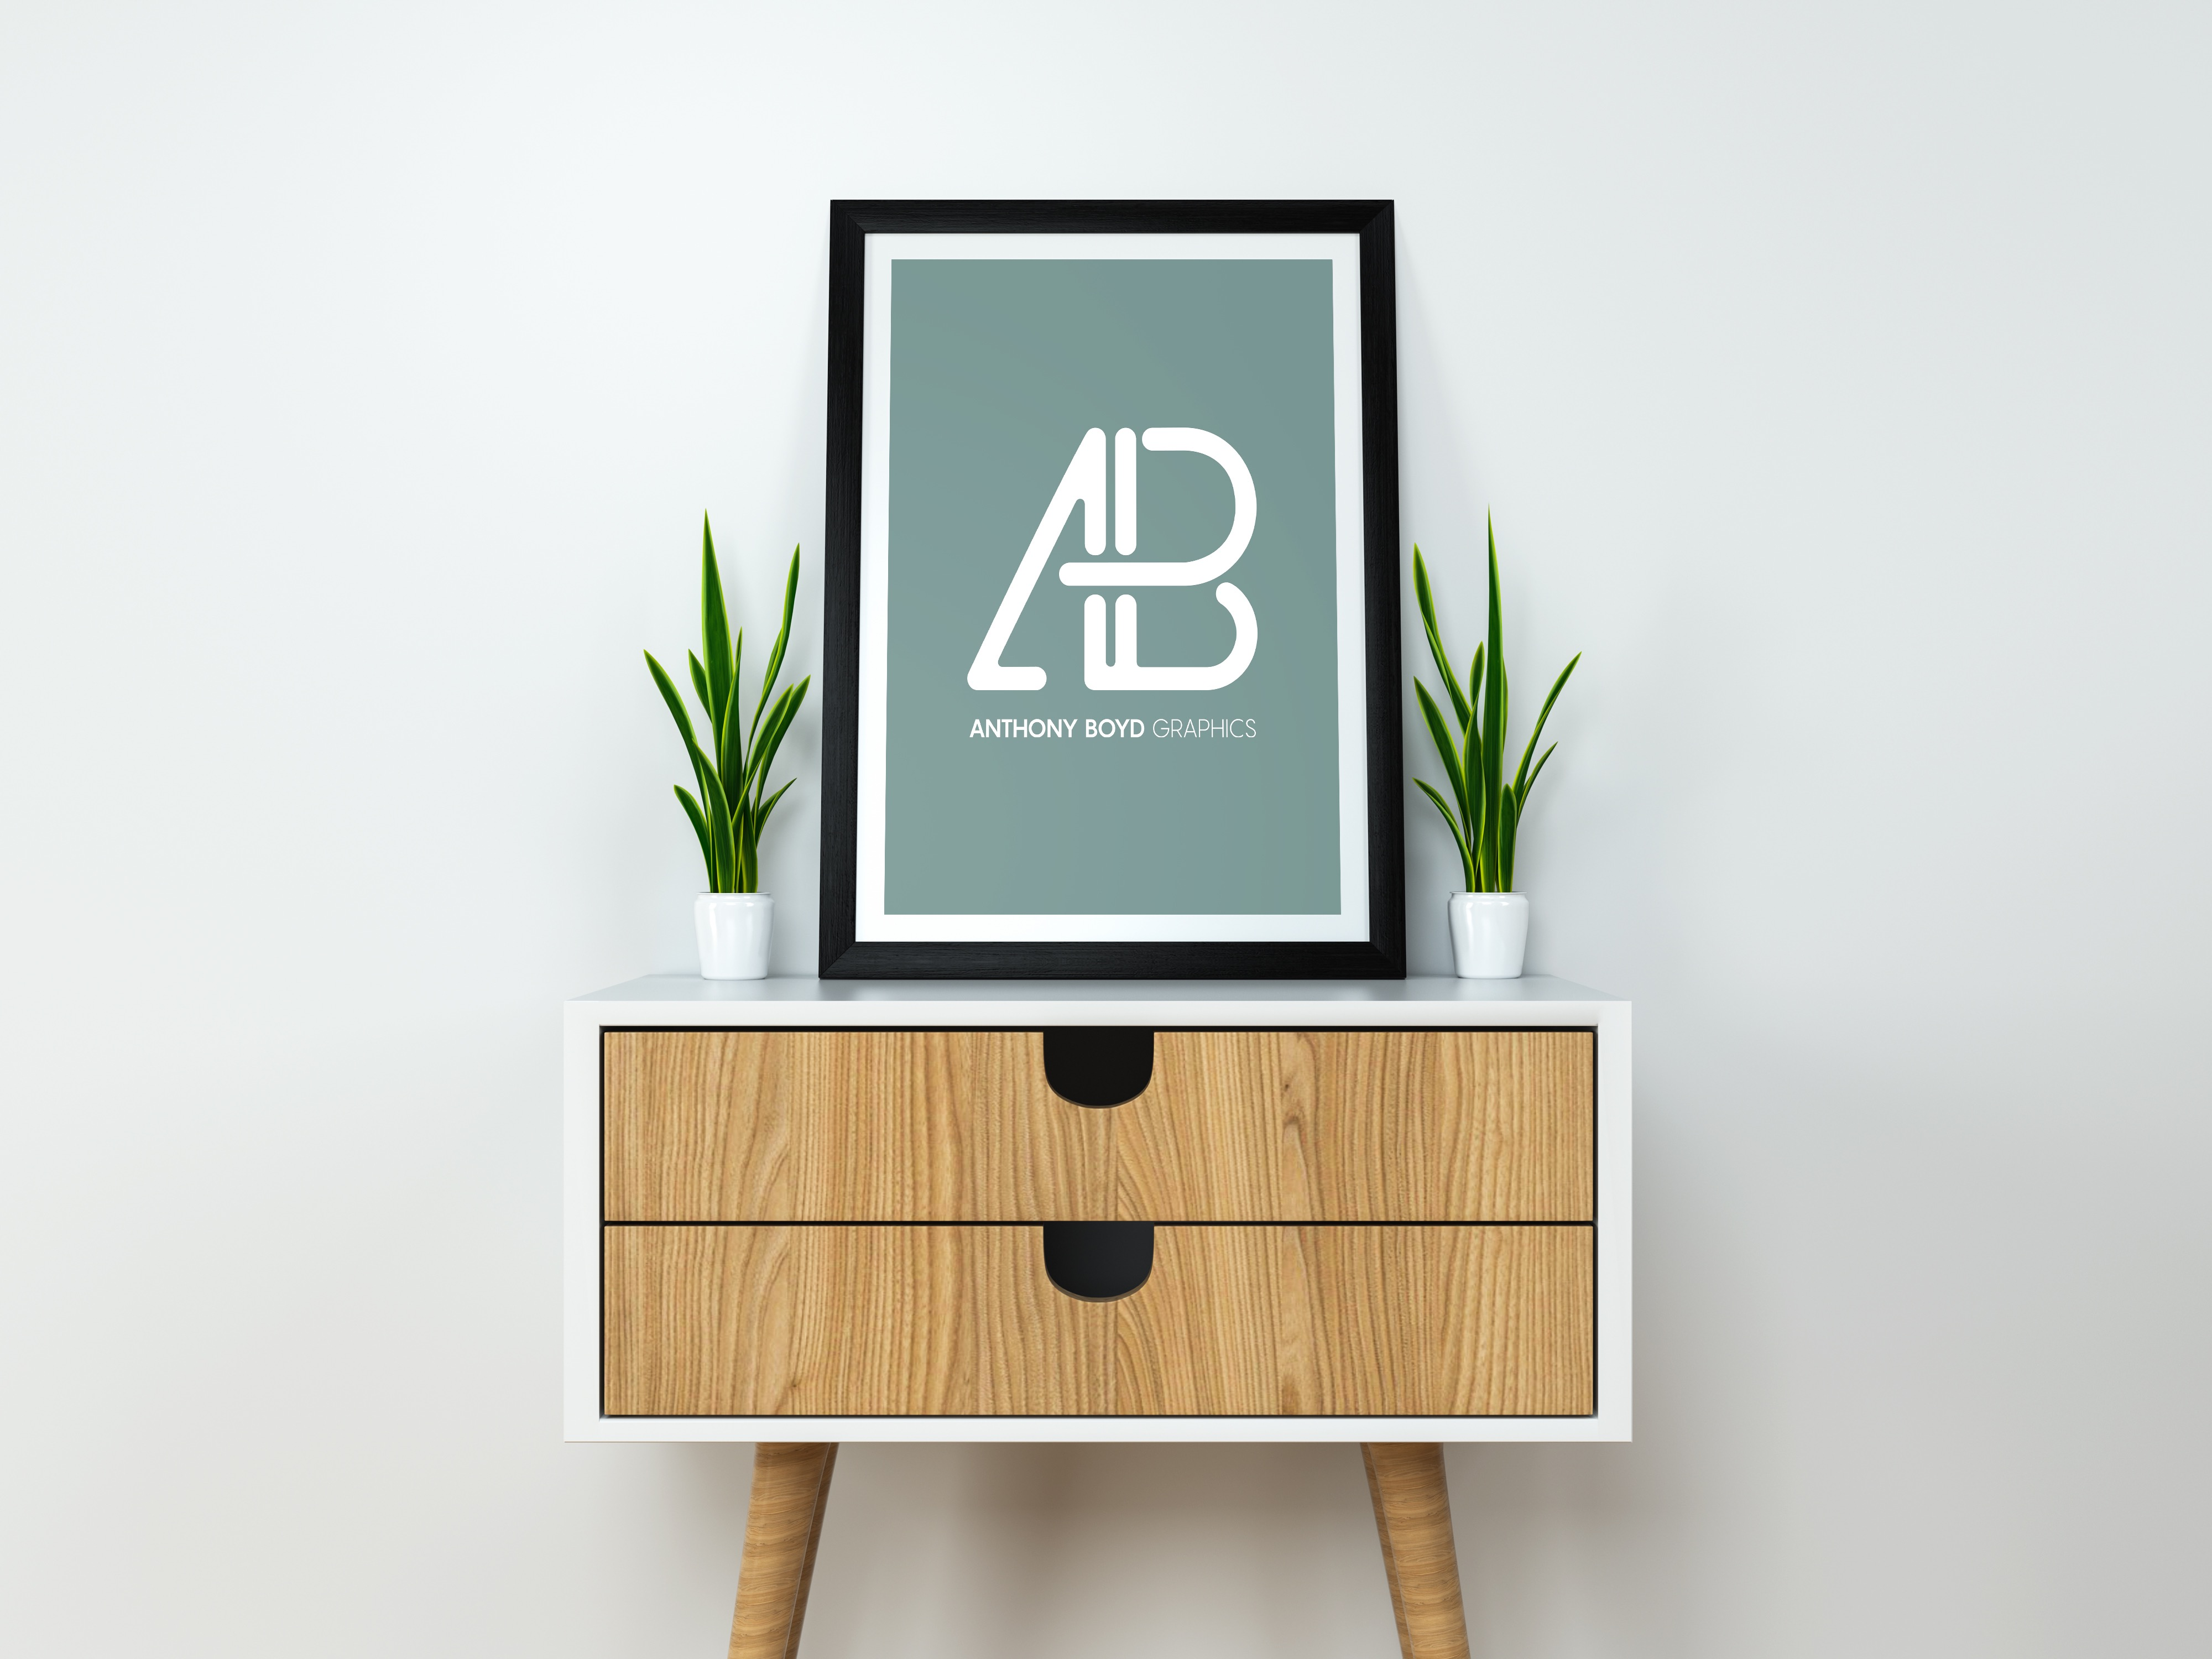 Picture of framed poster standing on a desk